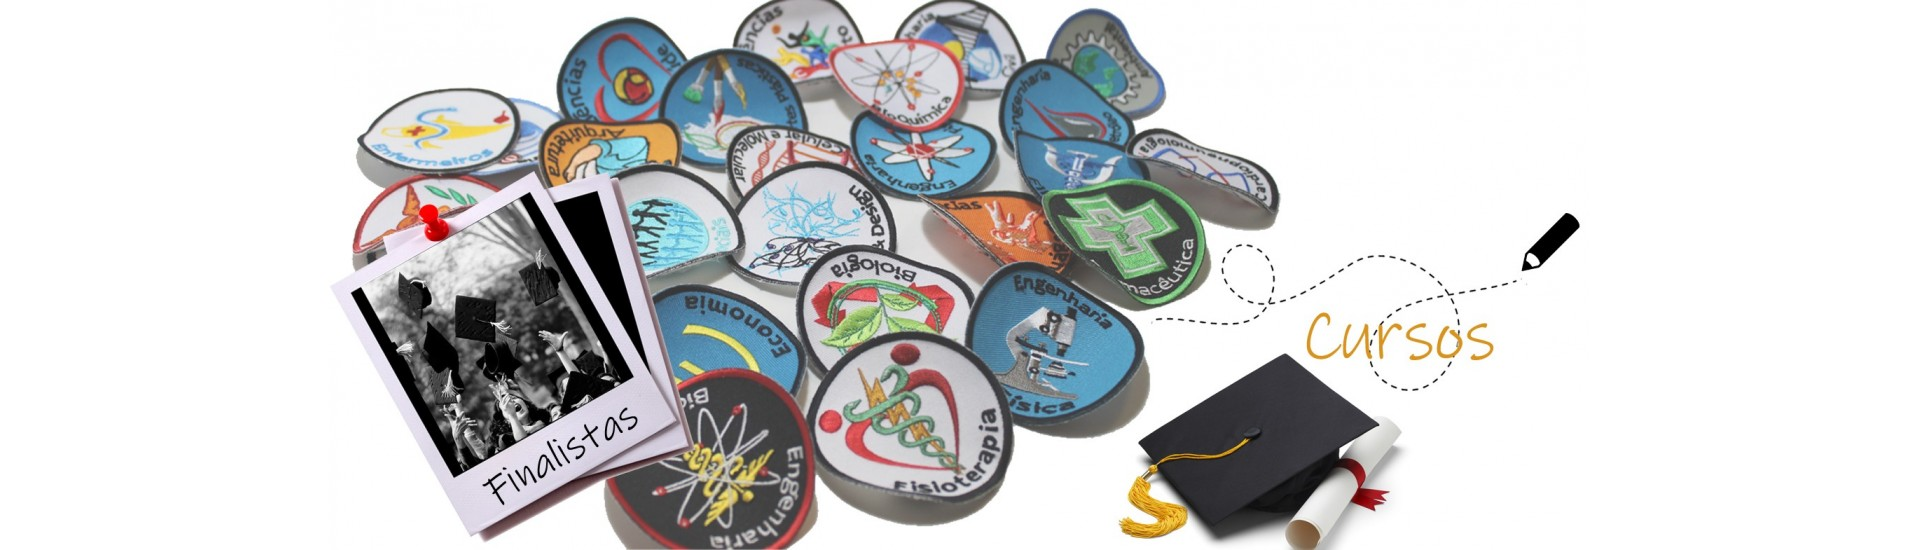 Courses Patches